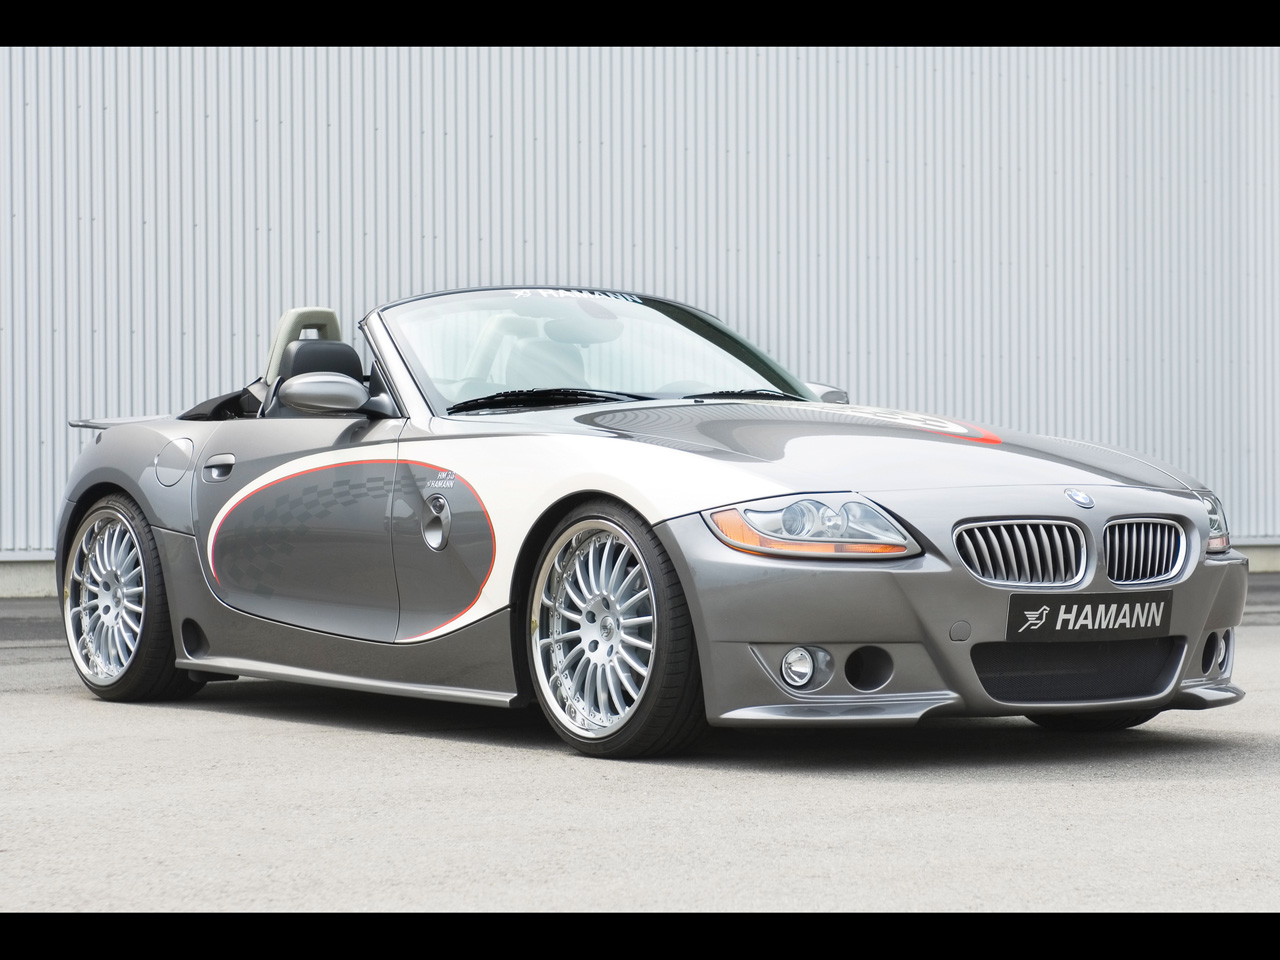 Bmw Z4 2007 Review Amazing Pictures And Images Look At The Car